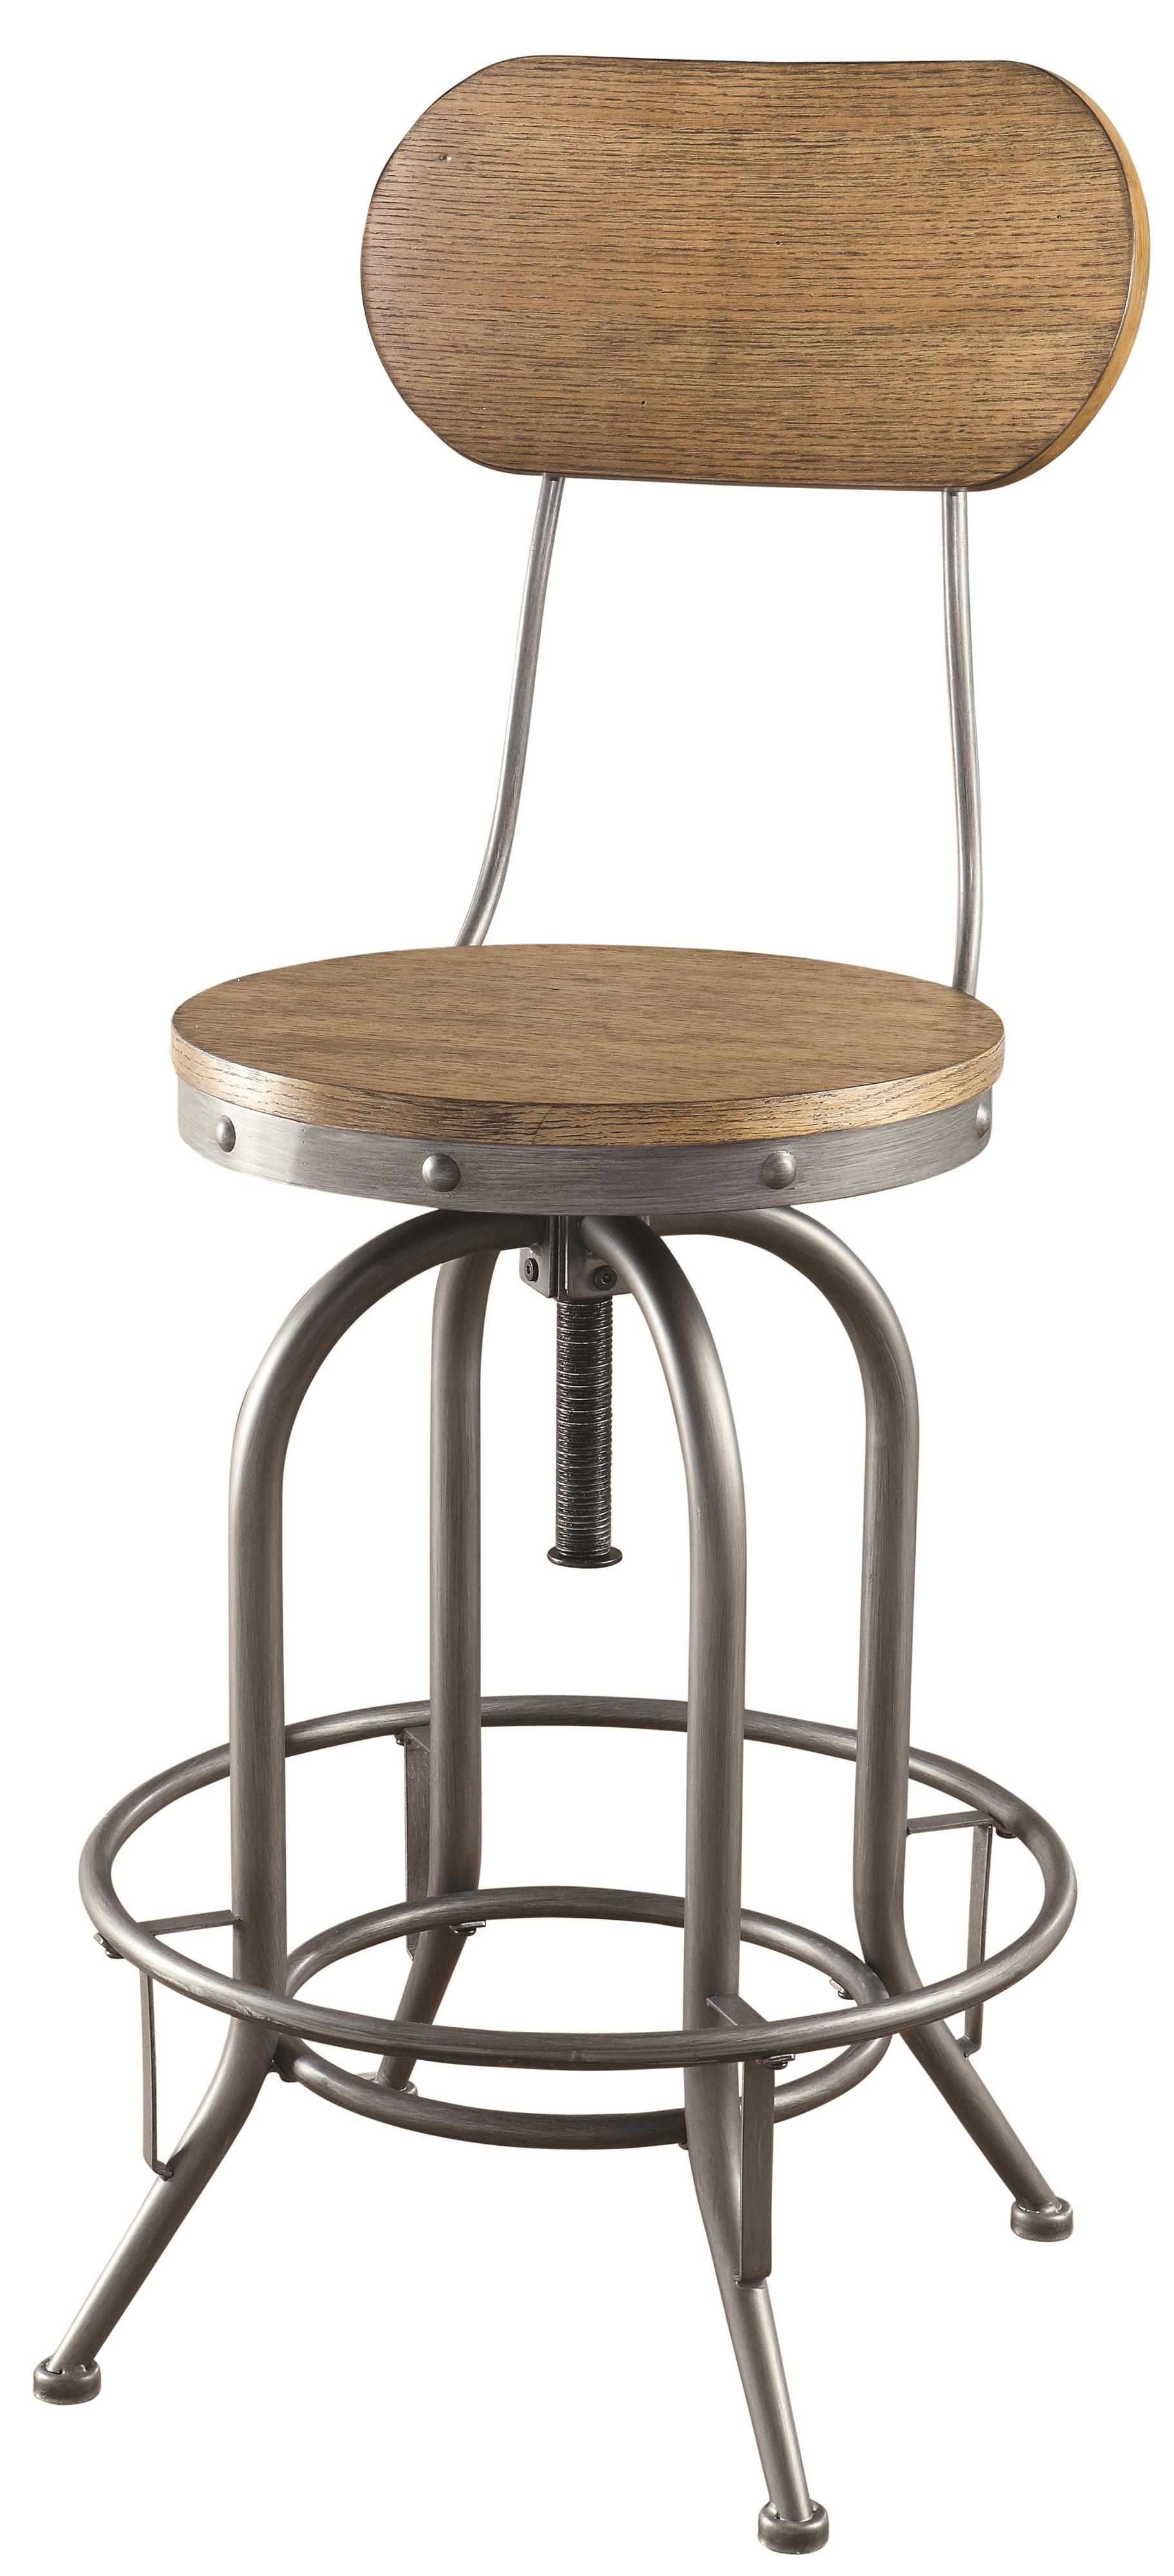 Coaster Bar Units And Bar Tables 100057 Adjustable Bar Stool With Wood Back And Seat Del Sol